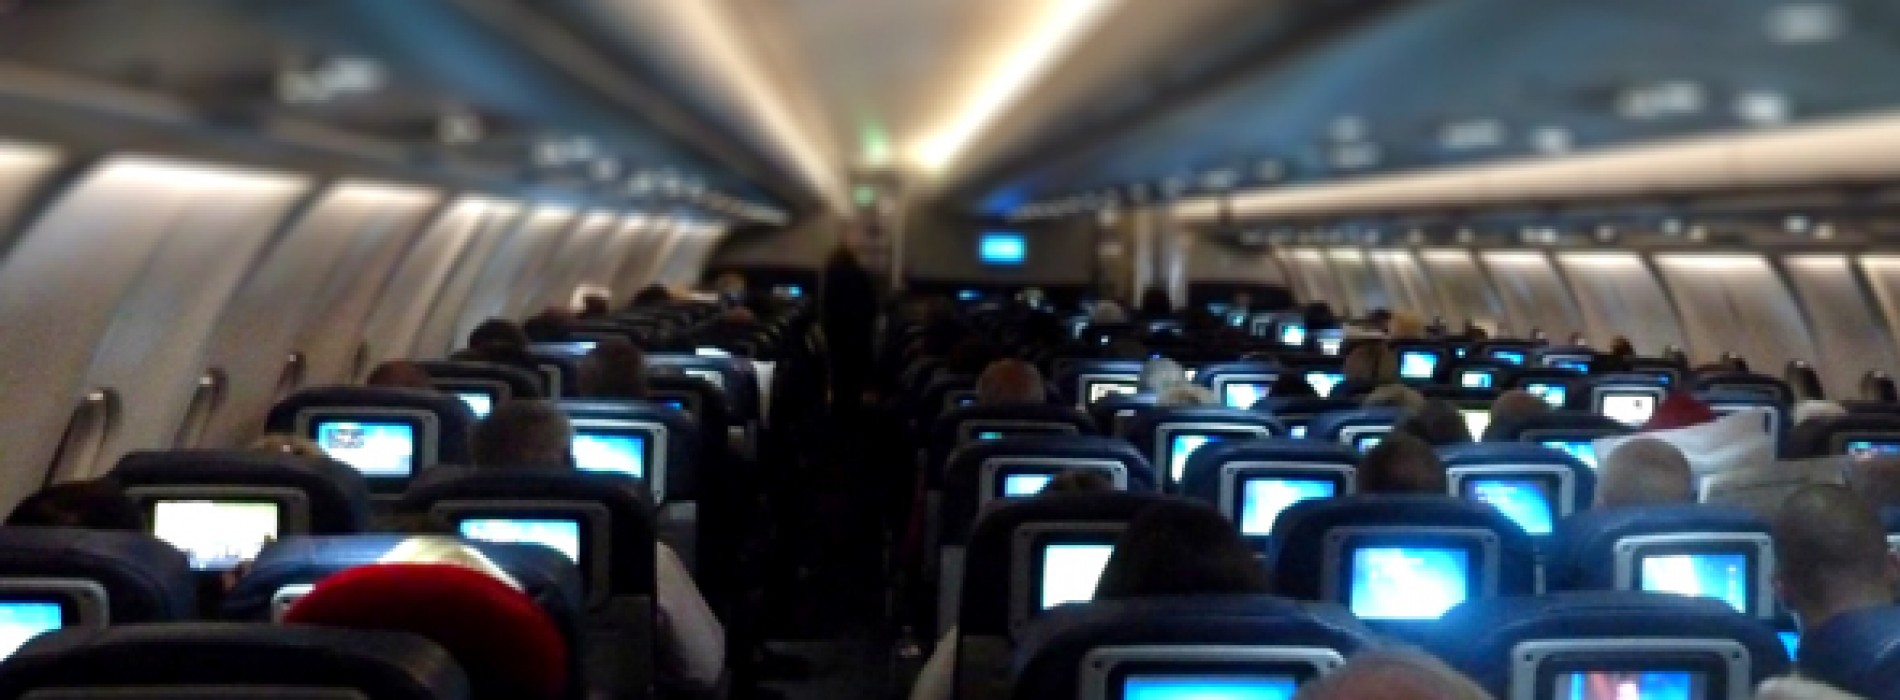 Top Five Suggestions for Airlines to Improve the Customer's Experience